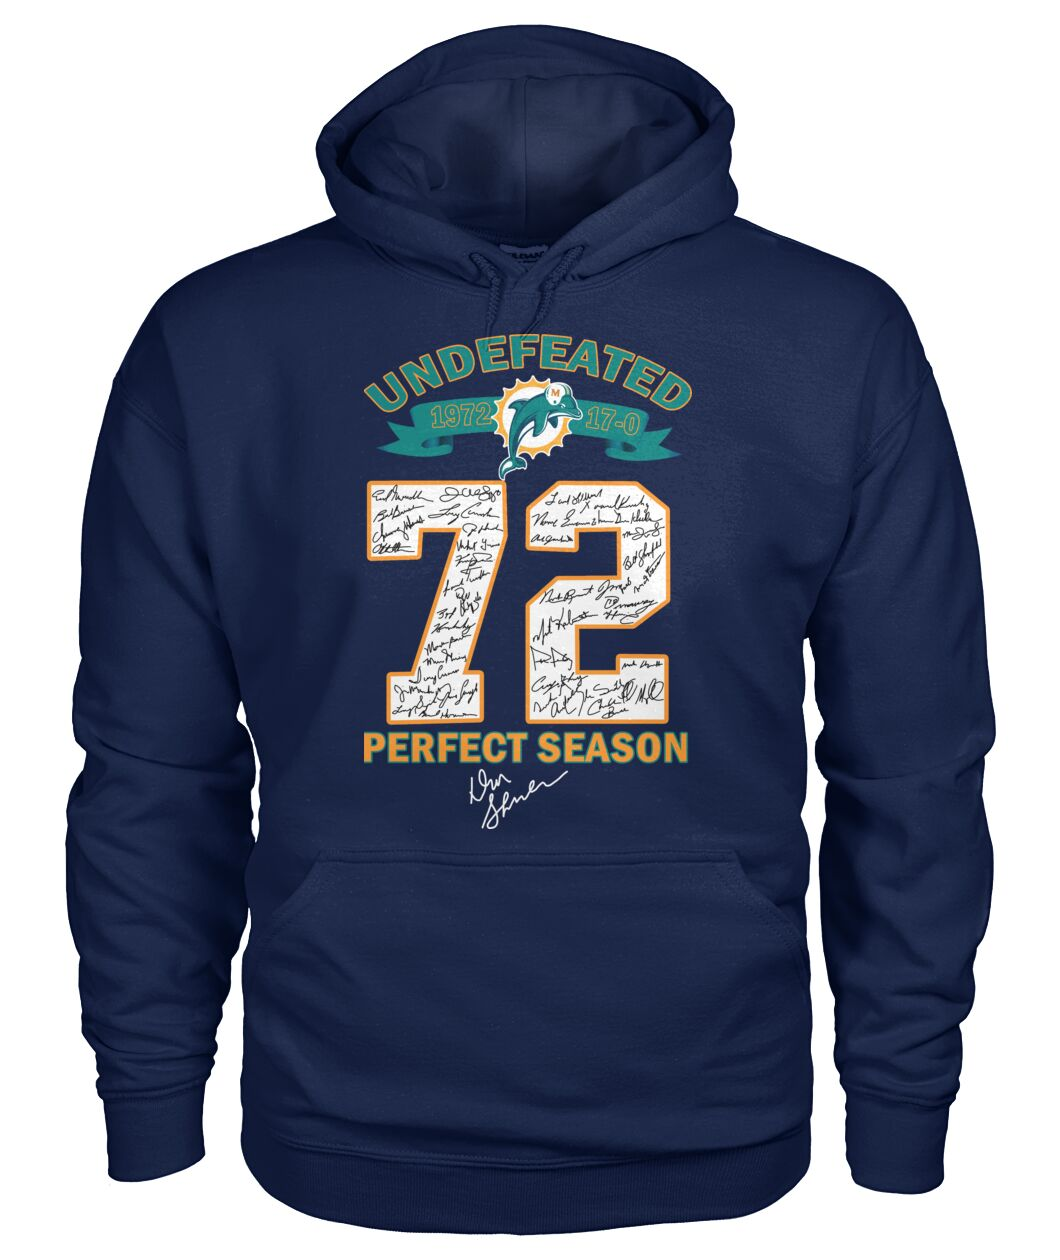 Miami Dolphins Undefeated 72 perfect season shirt 13